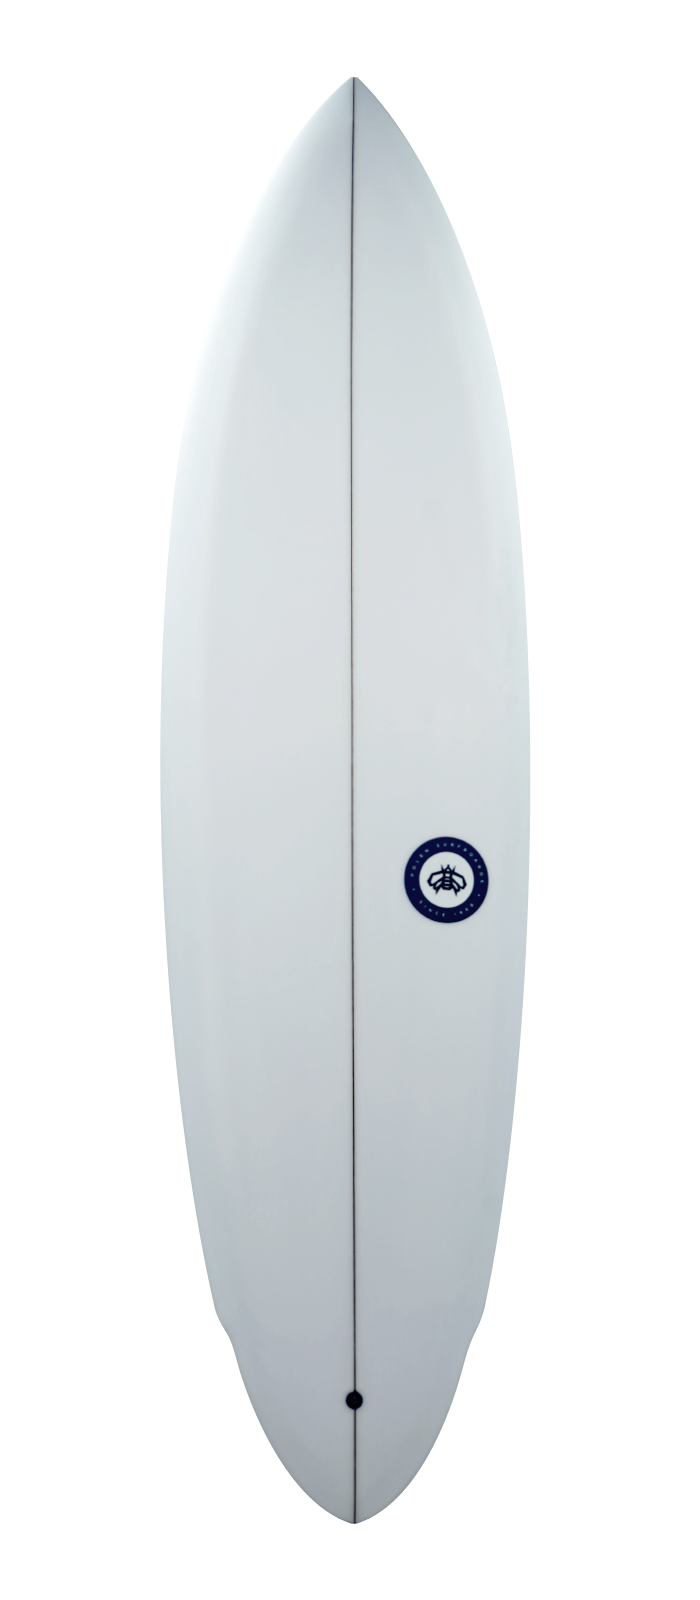 FAST SLICE surfboard model deck